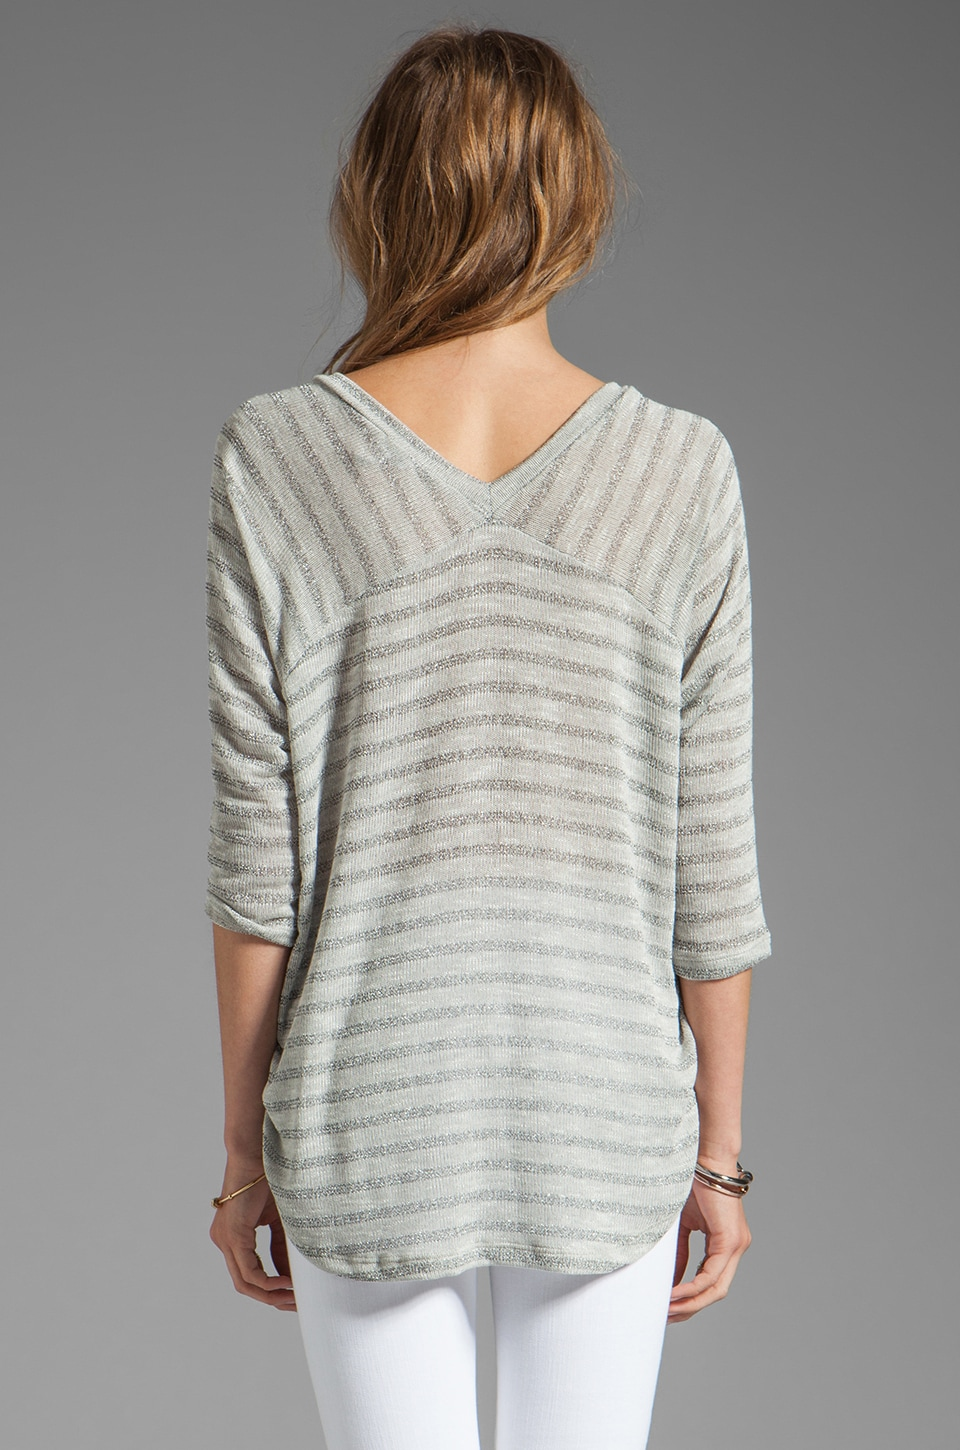 Splendid Disco Stripe Loose Knit Top in Heather Grey